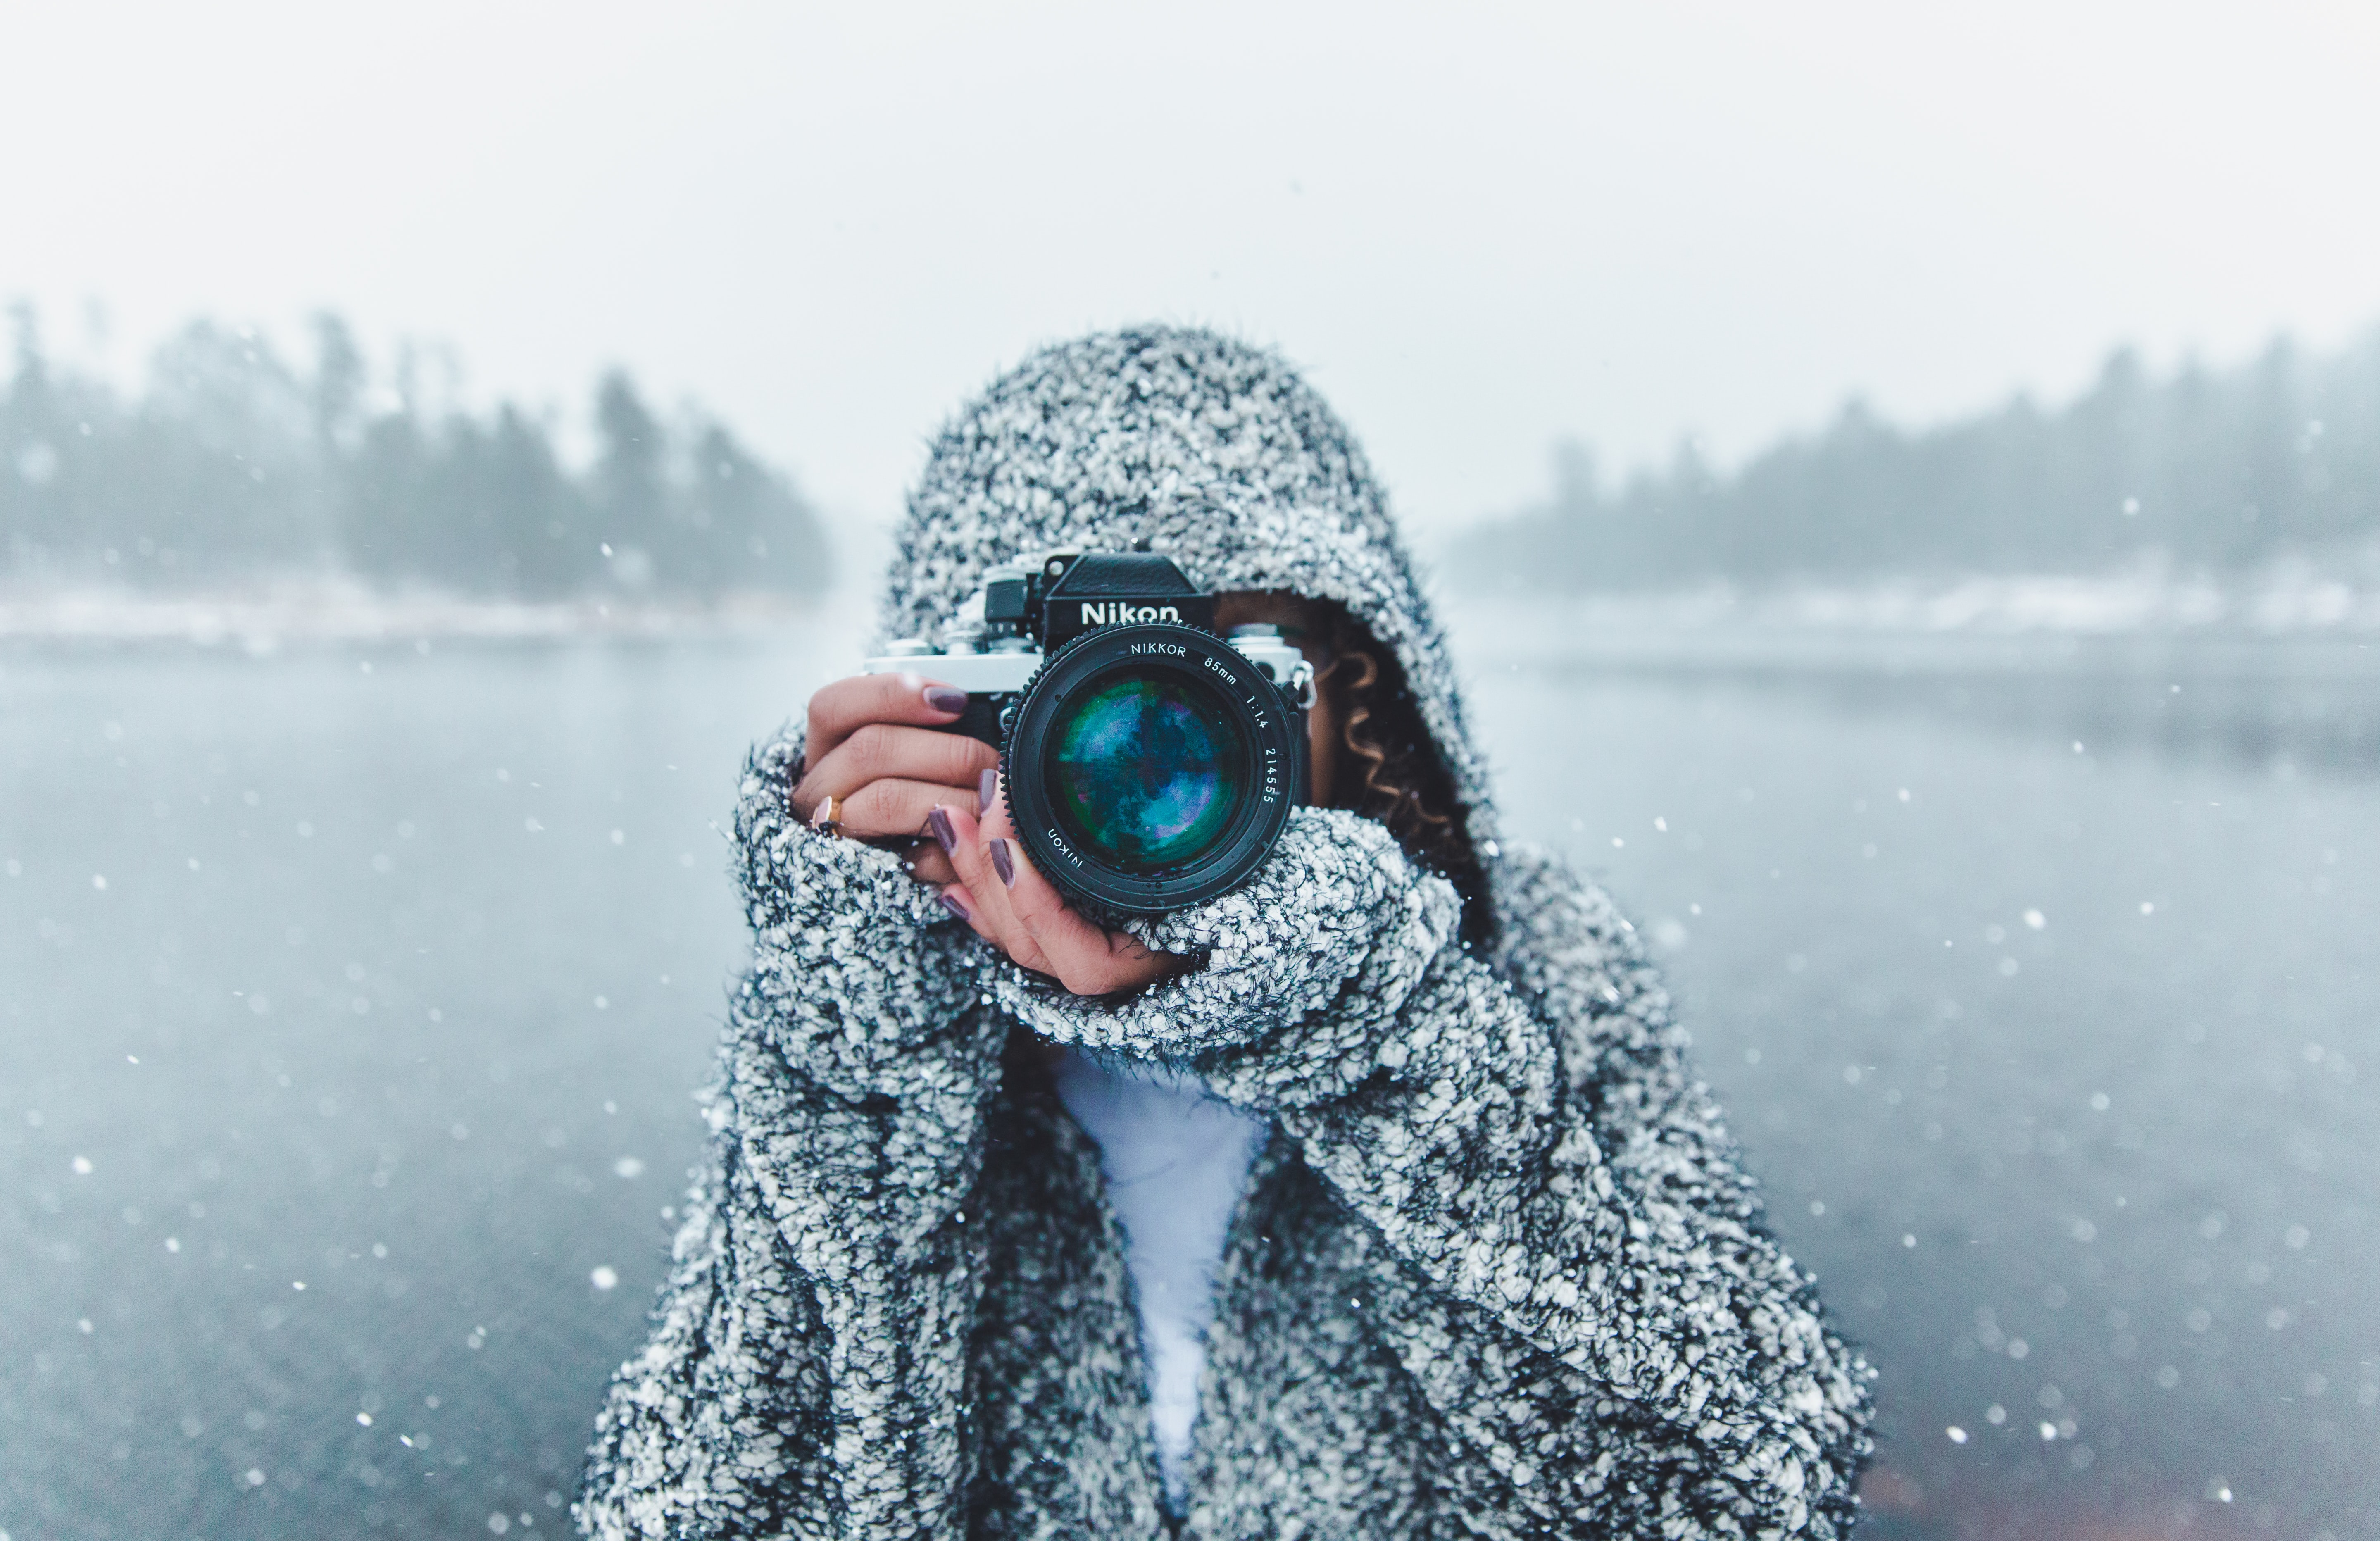 A woman taking a photo while standing over a lake with snow falling around her